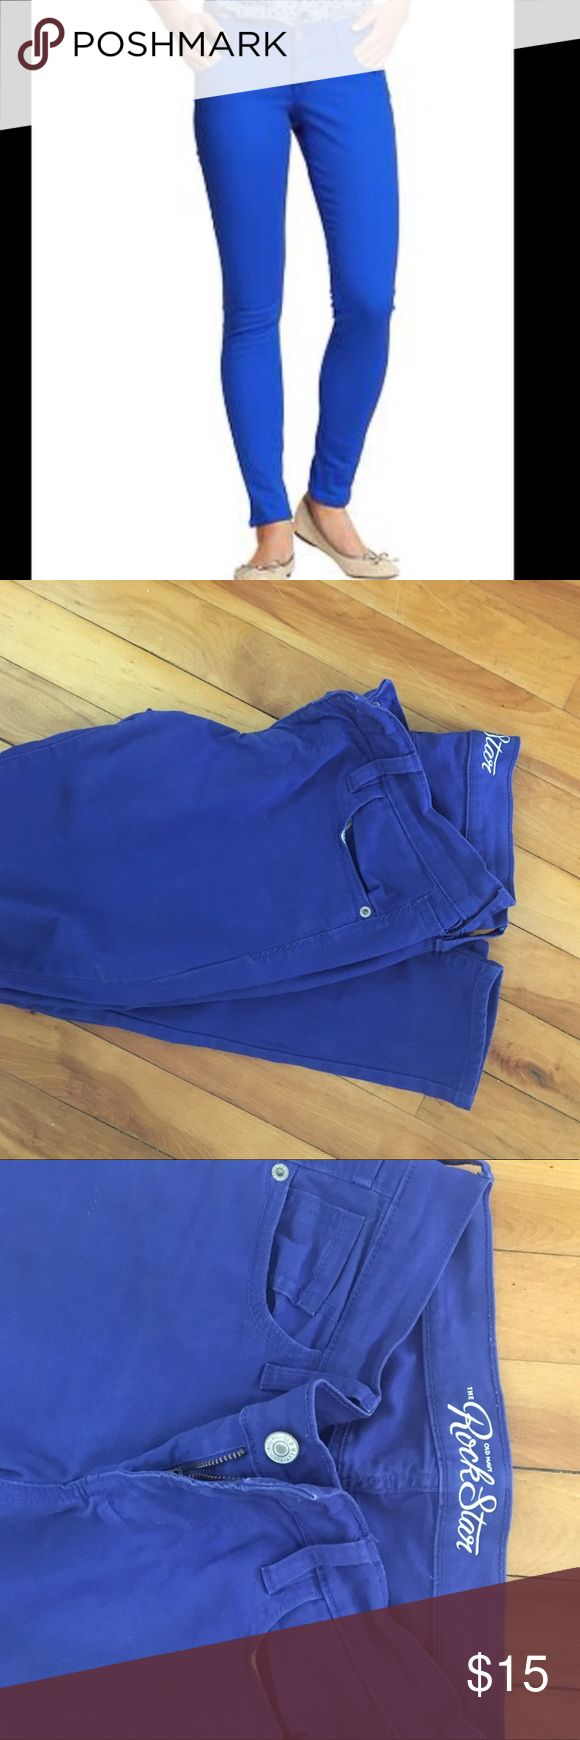 Rockstar cobalt jeans rockstar cobalt jeans- size 4 - good used condition- skinny jeans Old Navy Jeans Skinny